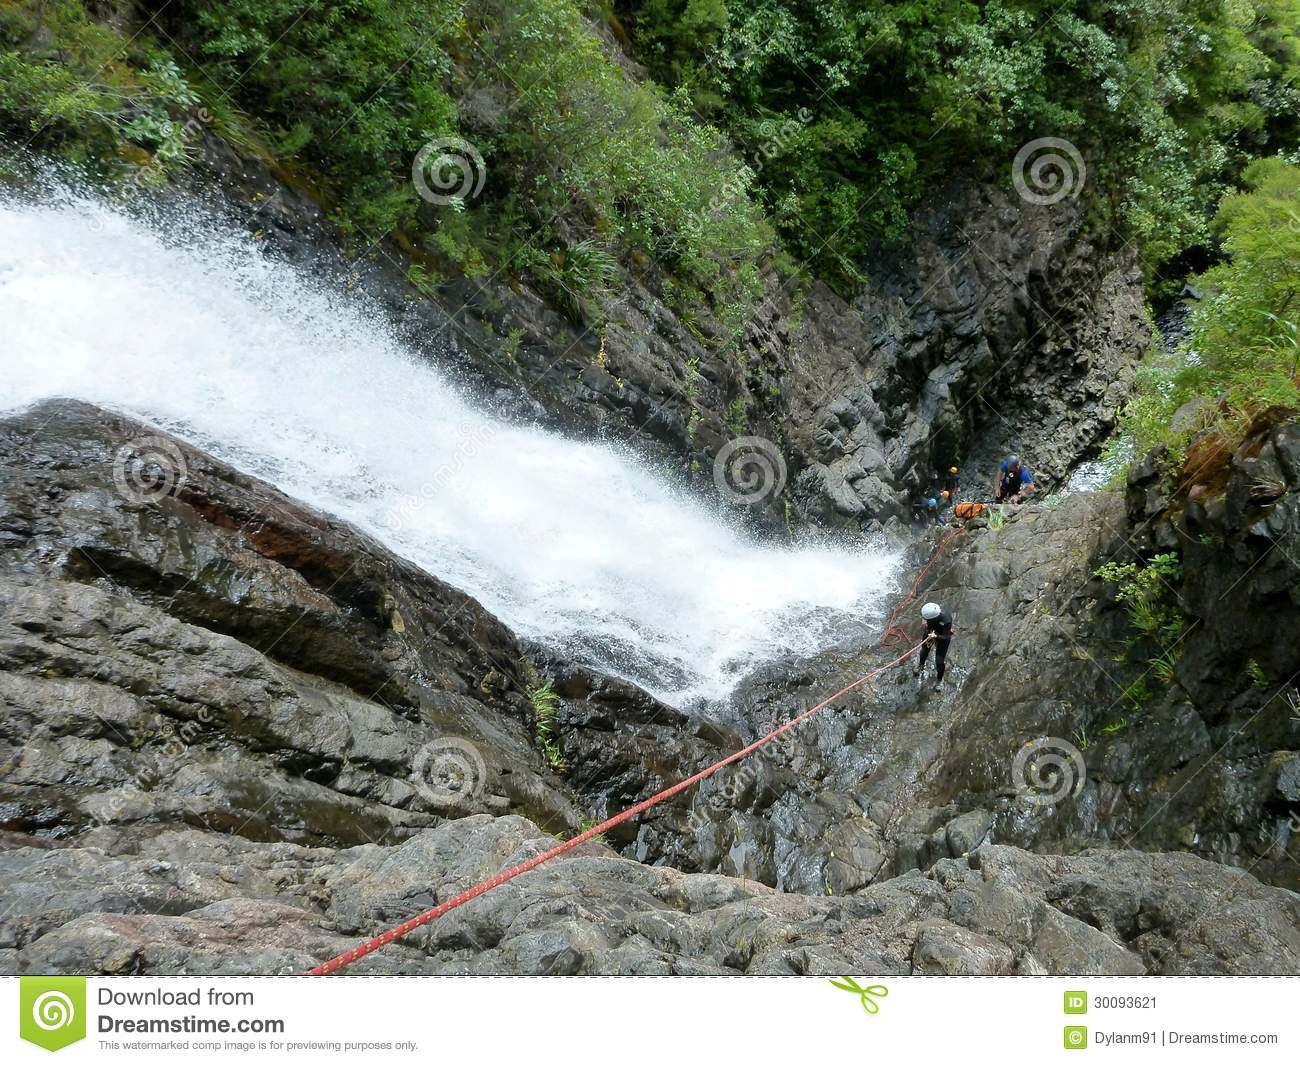 Abseiling next to Waterfalls